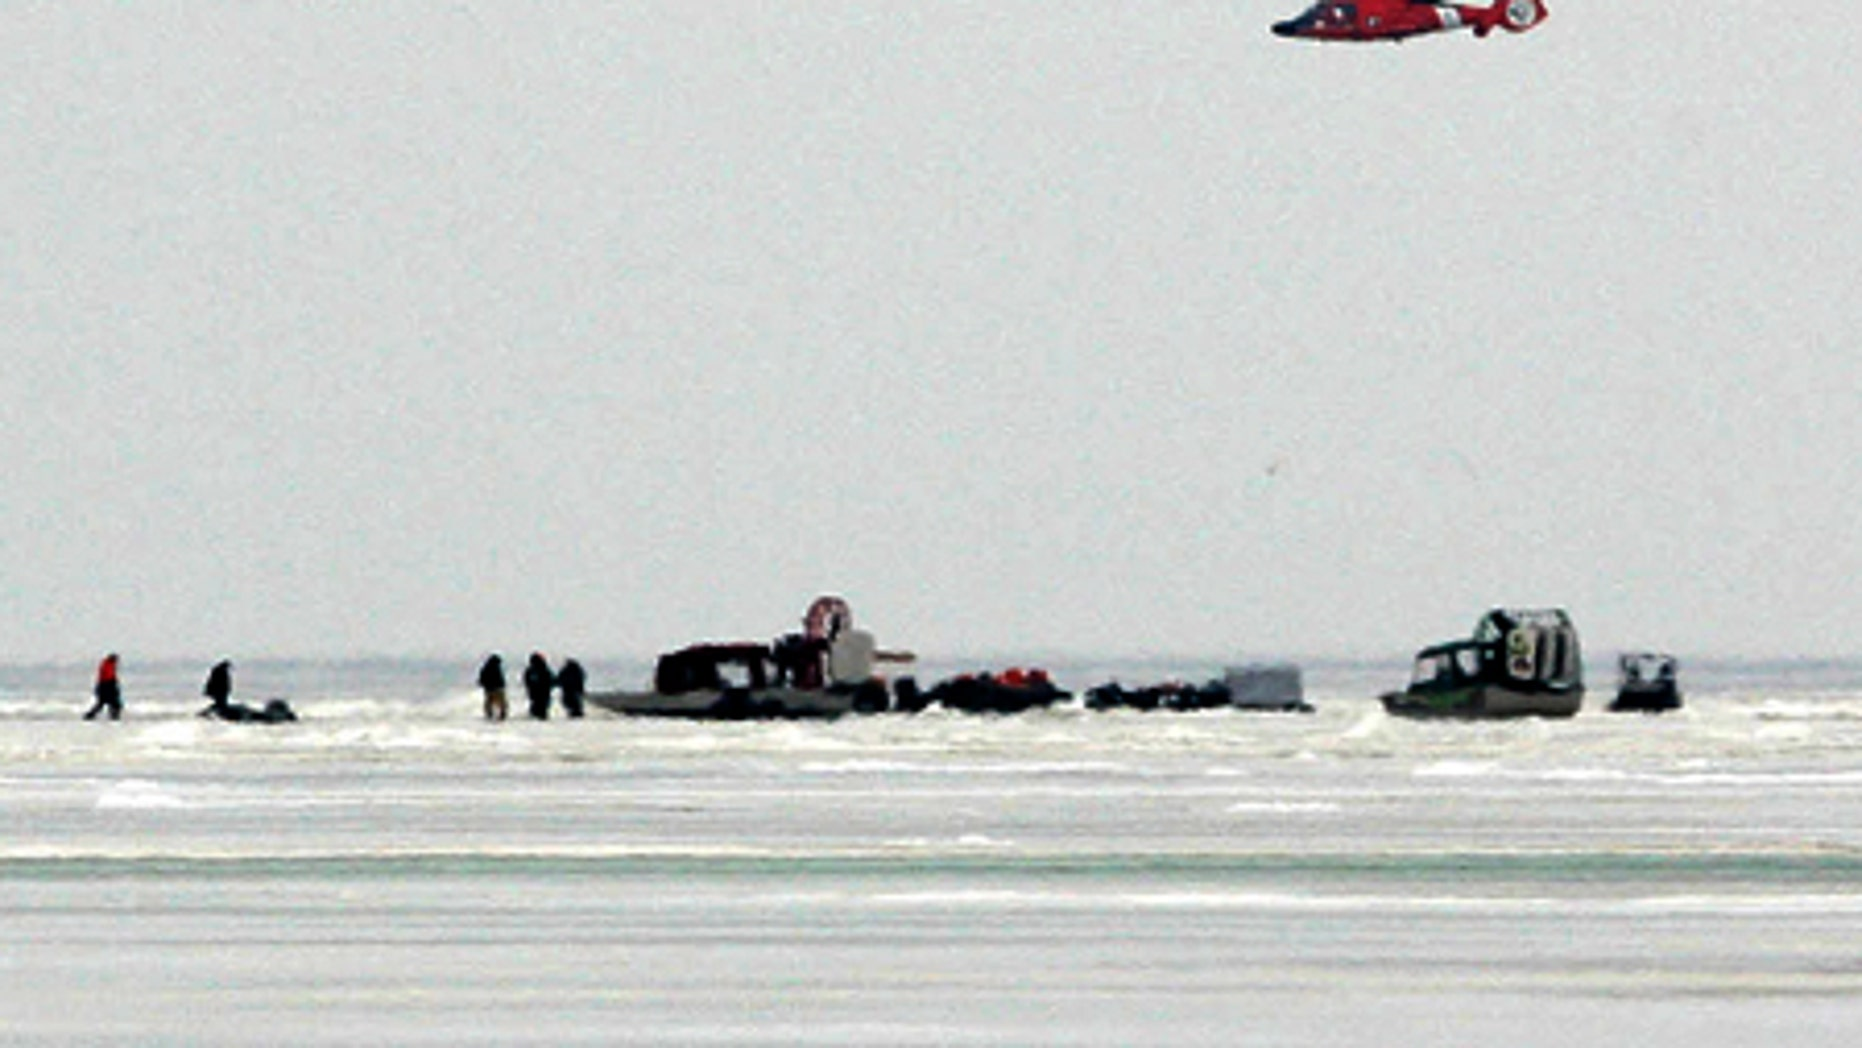 Feb. 7, 2009: Rescue efforts were under way after a slab of ice broke free from the Ohio shore and drifted into Lake Erie.